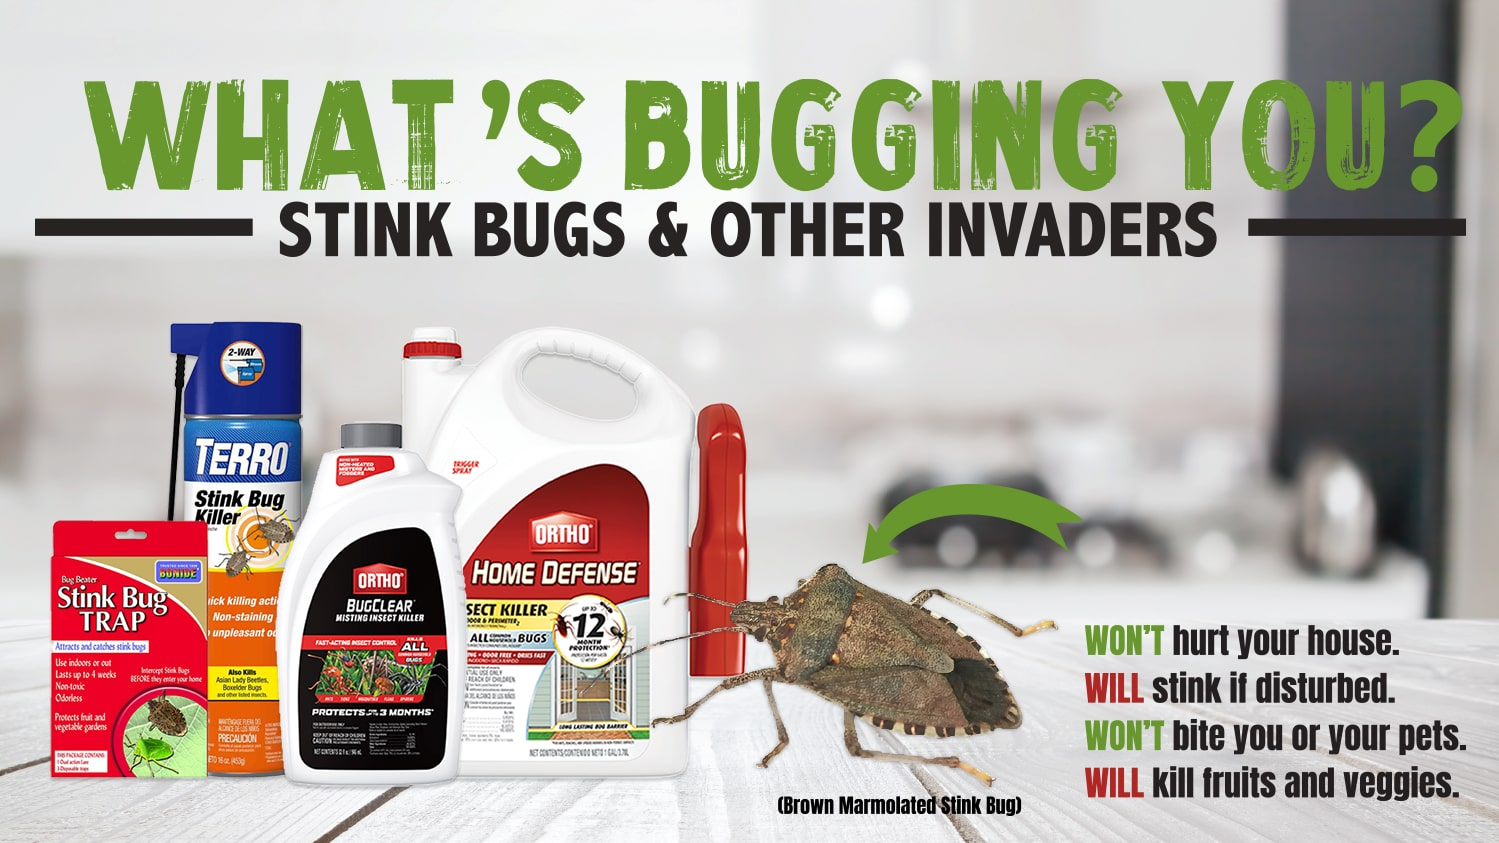 Pest Blog Stink Bugs - What's Bugging You